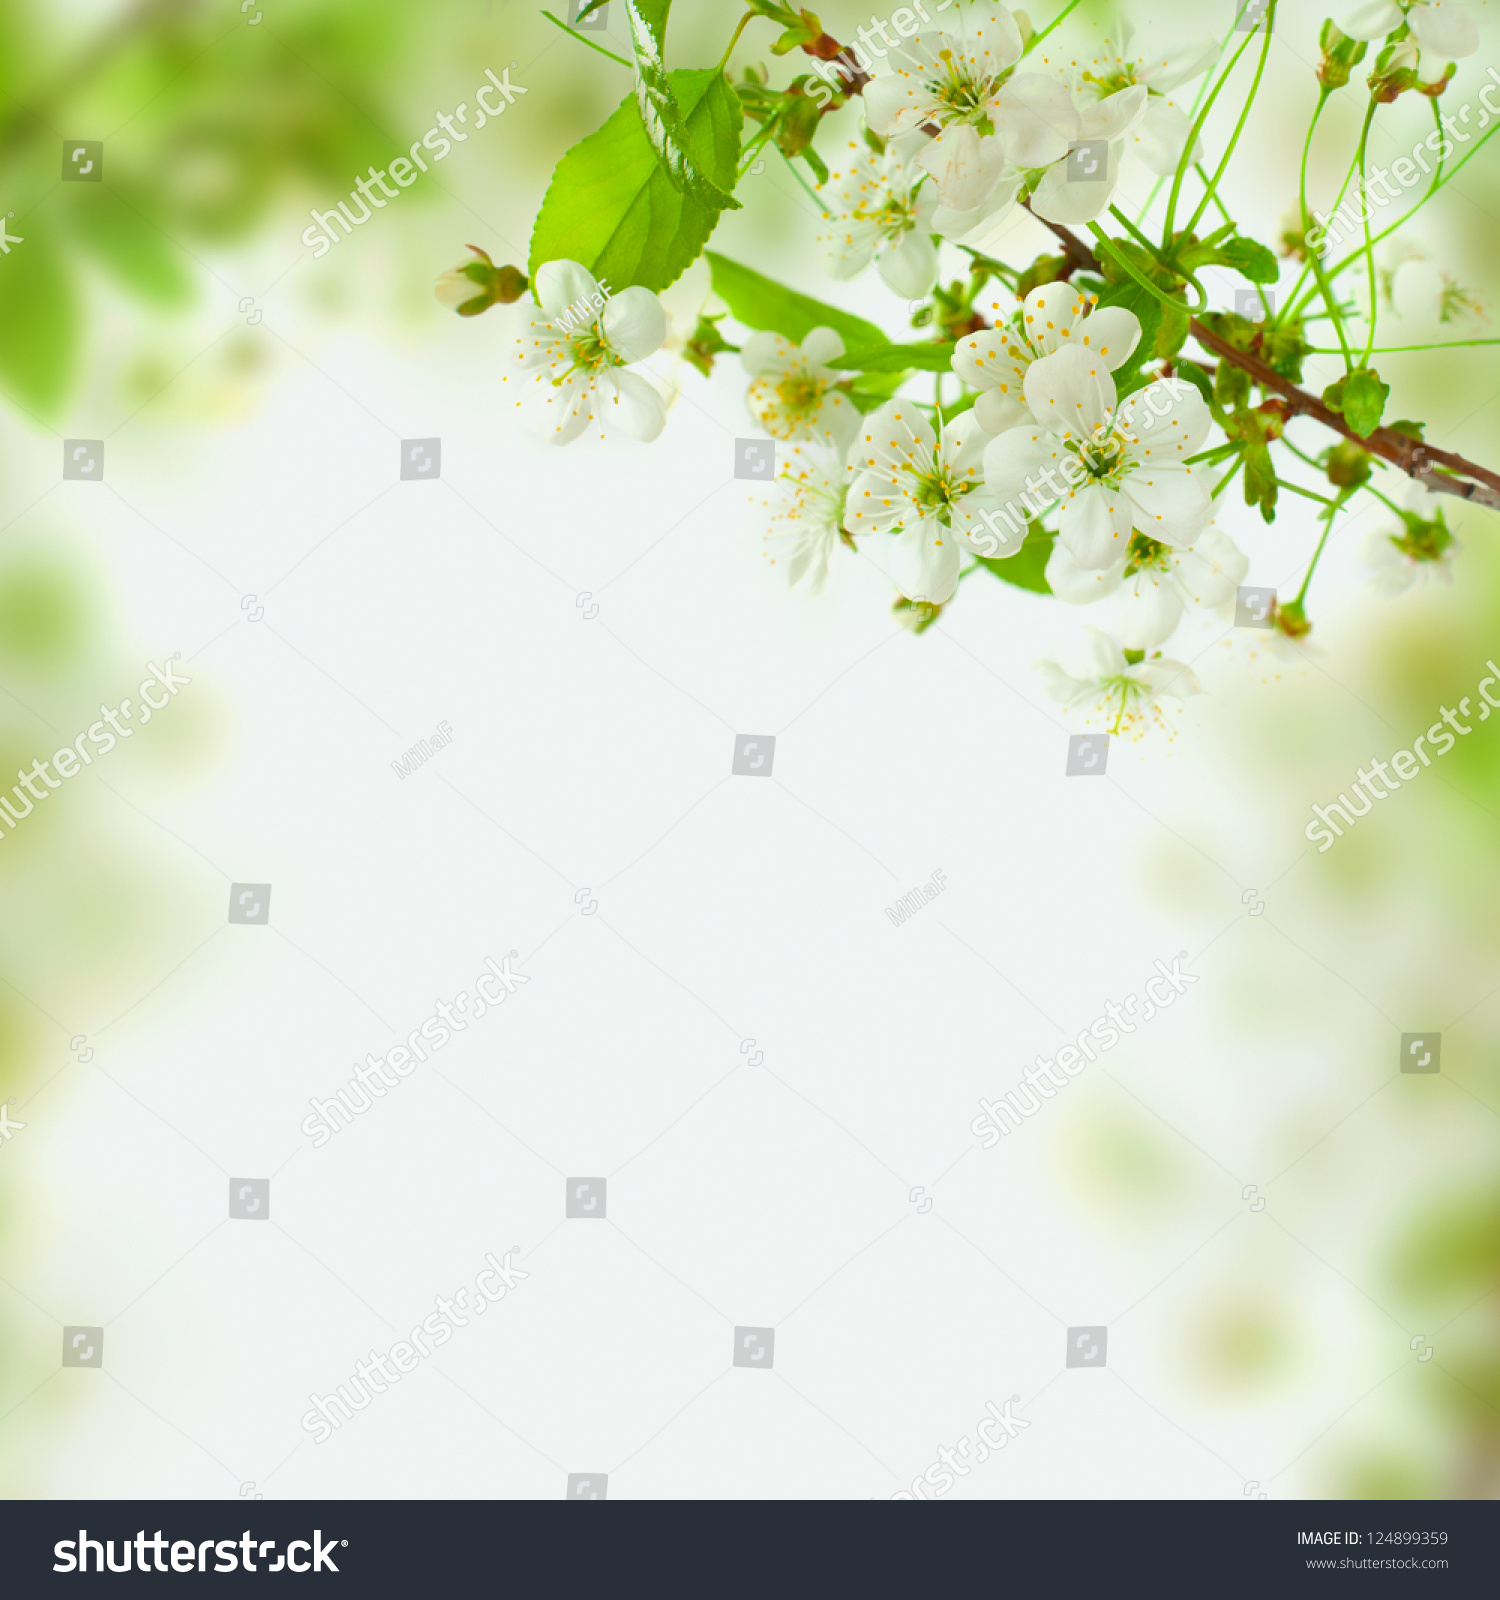 Spring Blossom Background Abstract Floral Border Stock